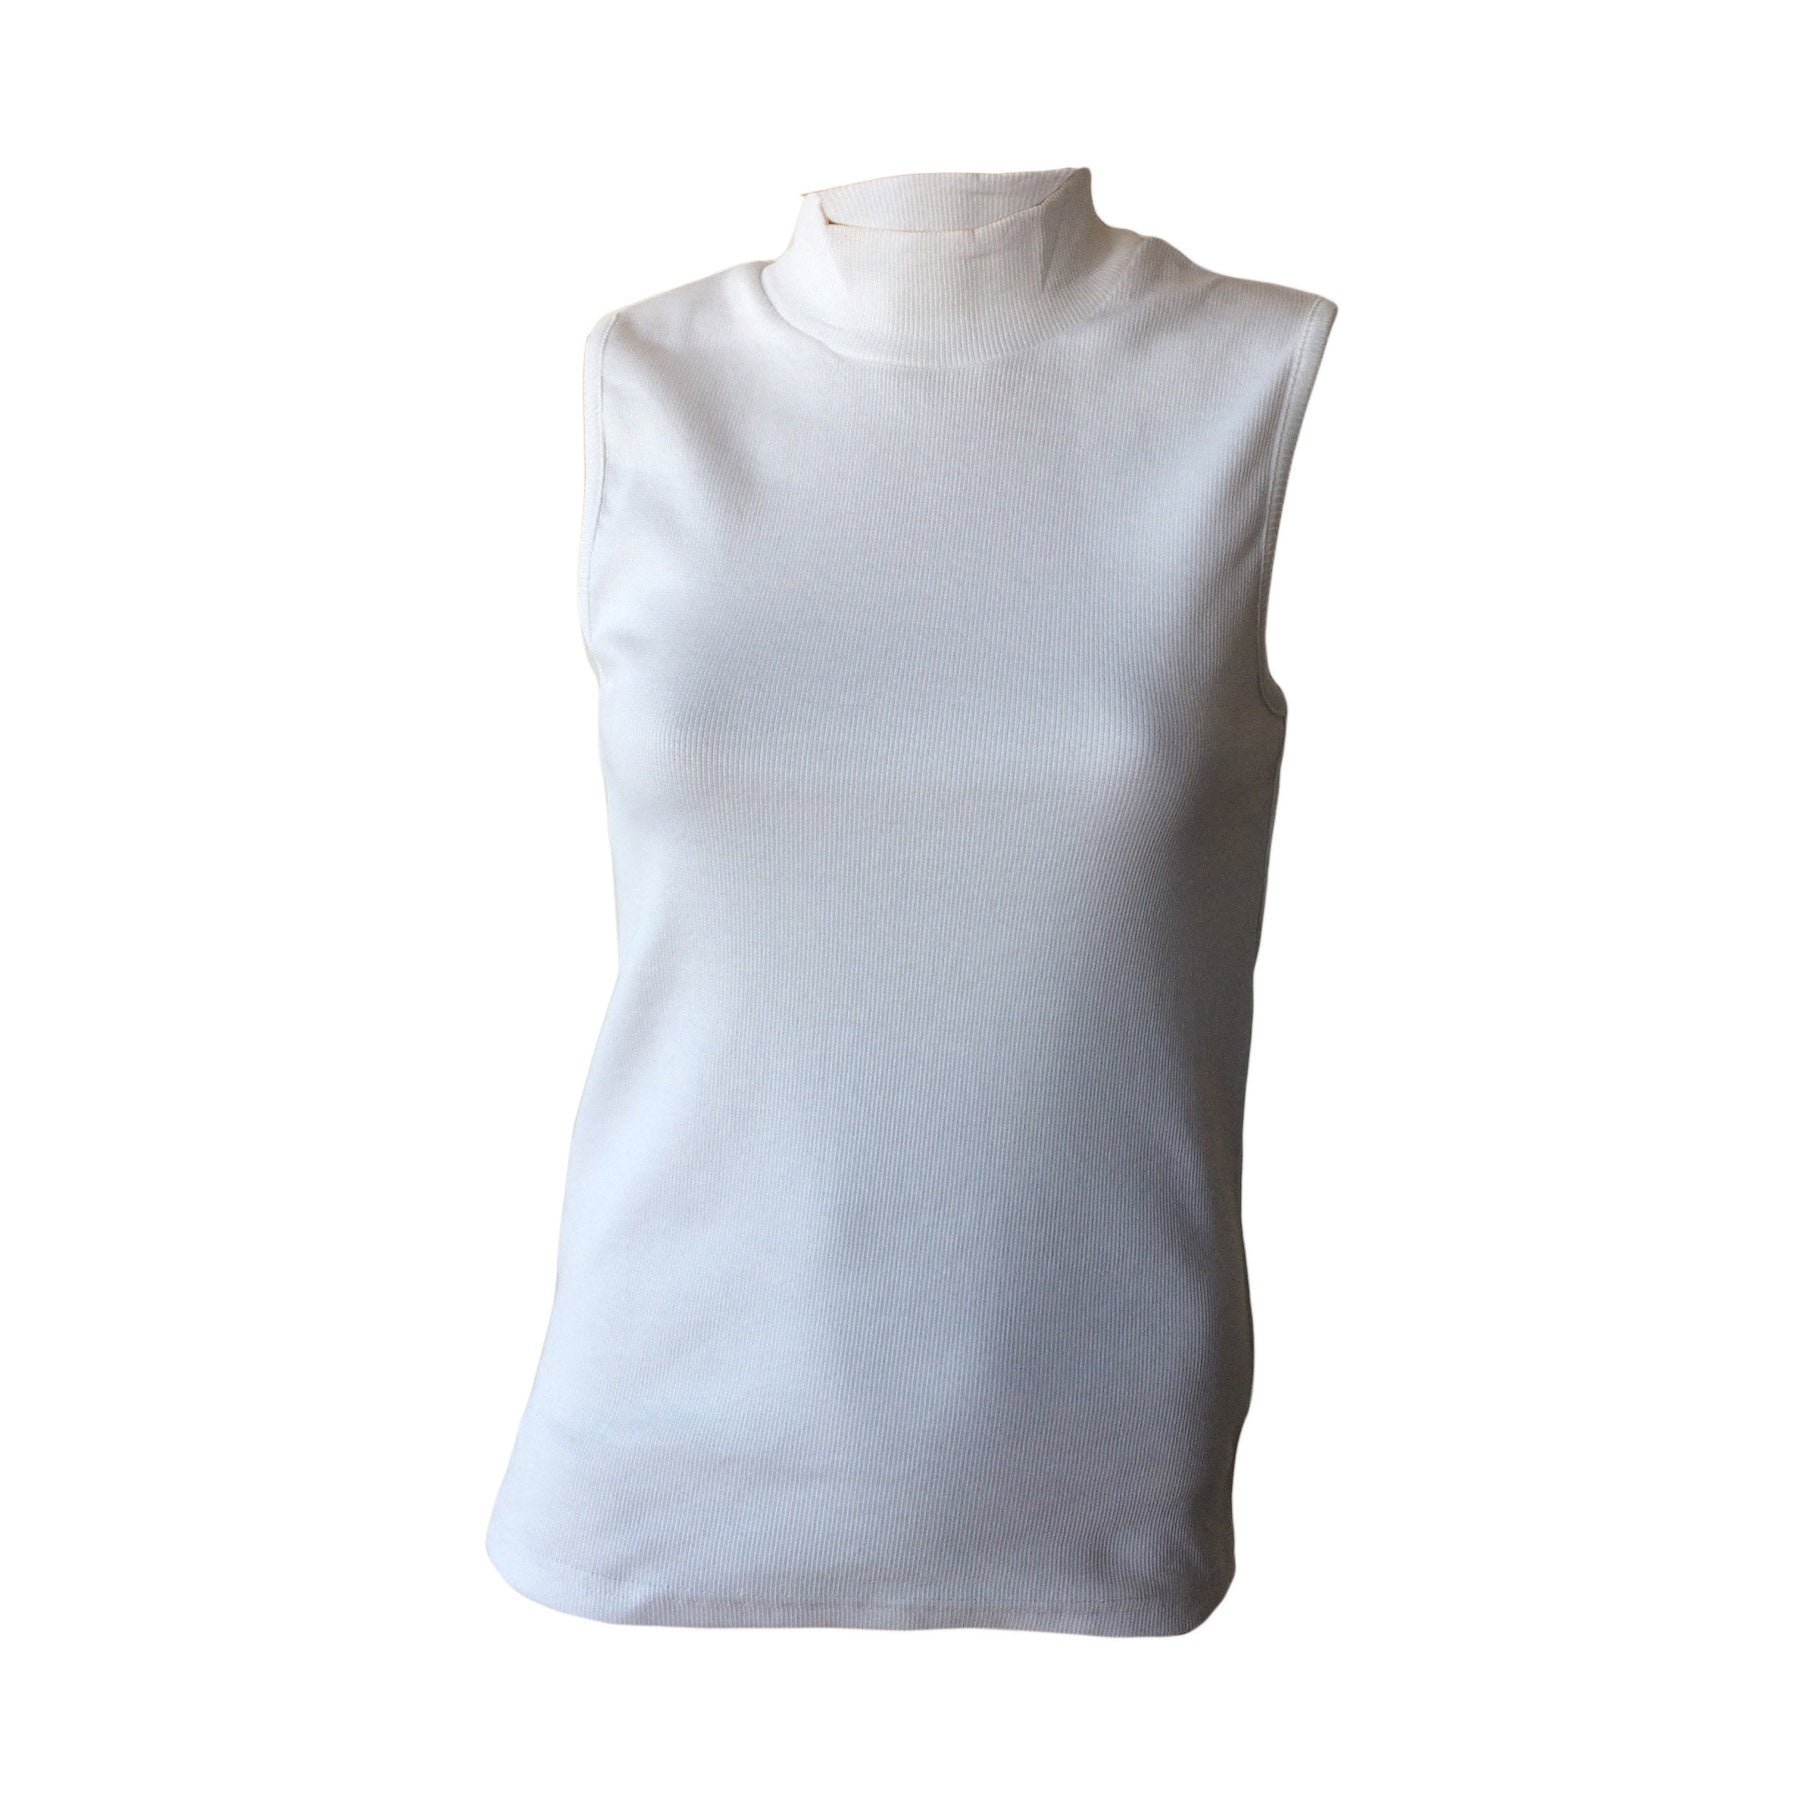 We love this White Turtleneck Tank by Danish designers Grunt.  It